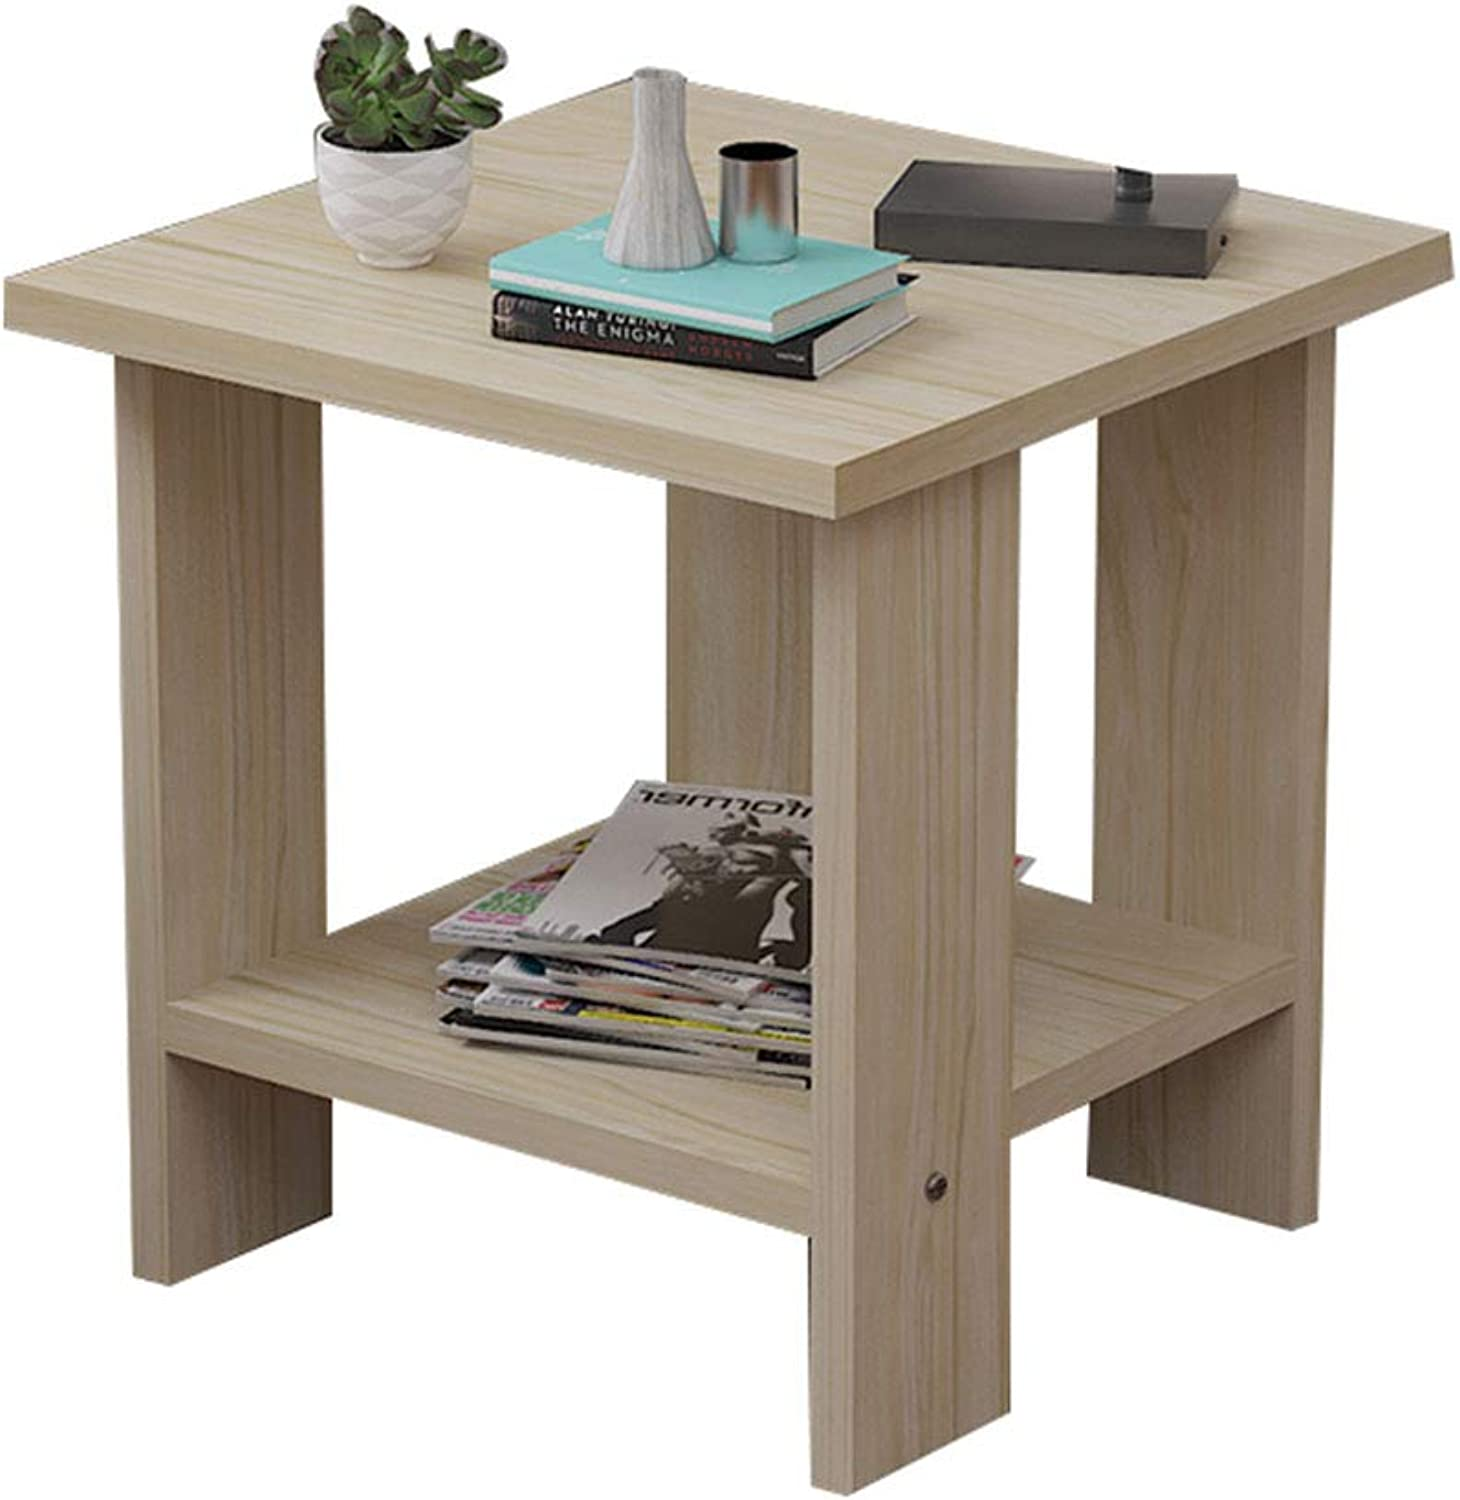 Coffee Table Coffee Table, Modern Simplicity Small Apartment Side Table,Square Table, Suitable for Living Room Sofa Side Bedroom Bedside (Size   30  30  32cm)